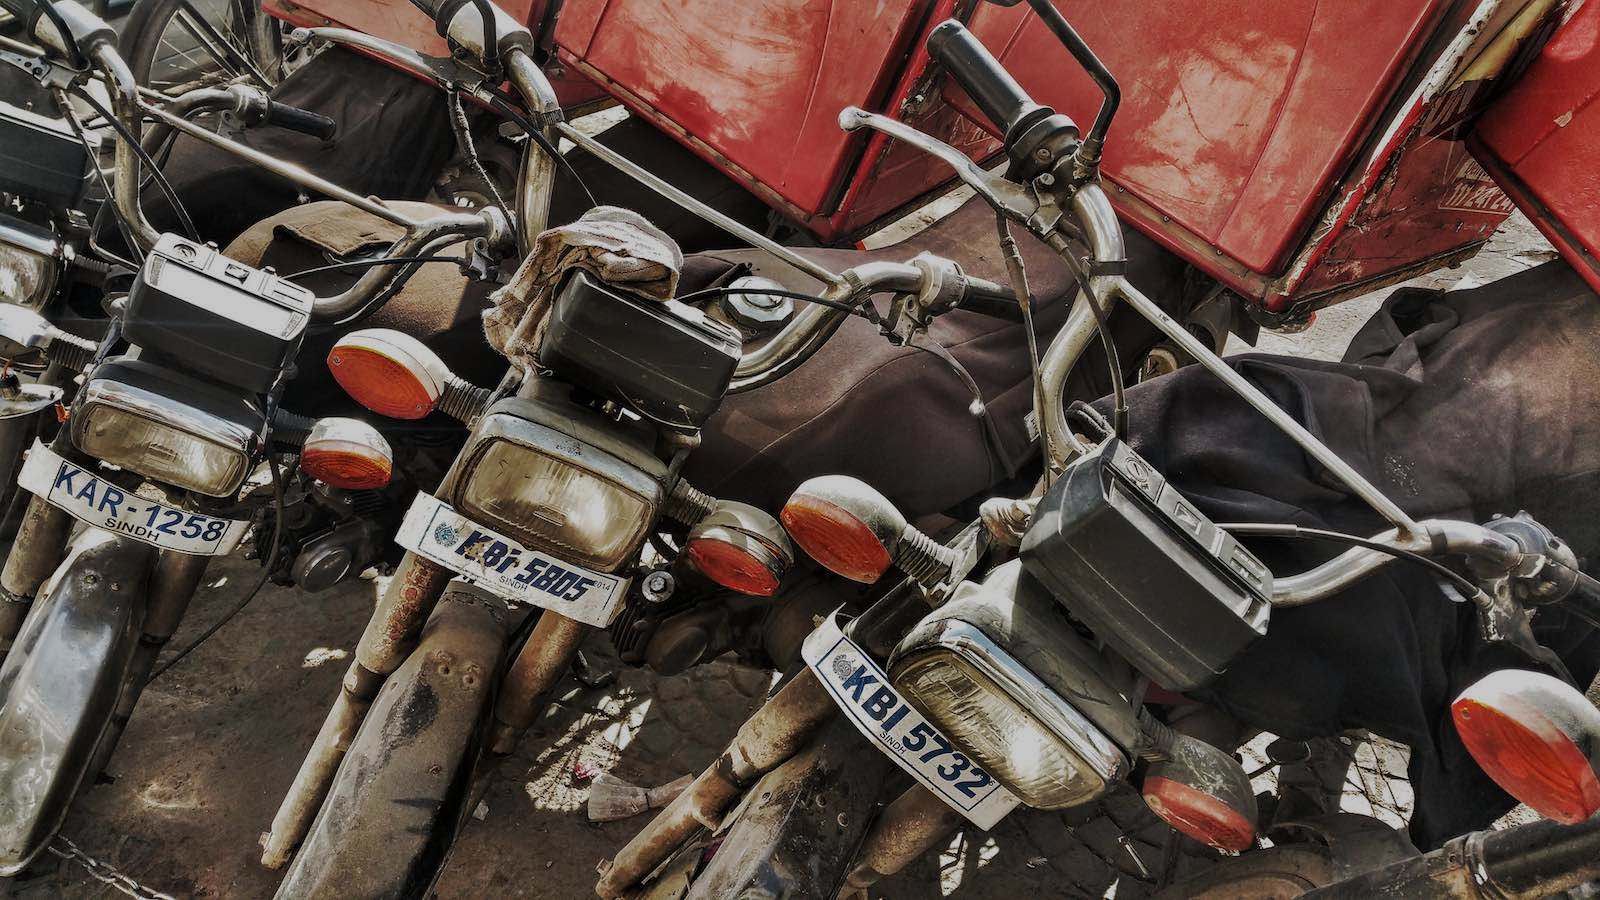 Motocycles in Karachi, Pakistan (Photo: Andy Miah/Flickr)